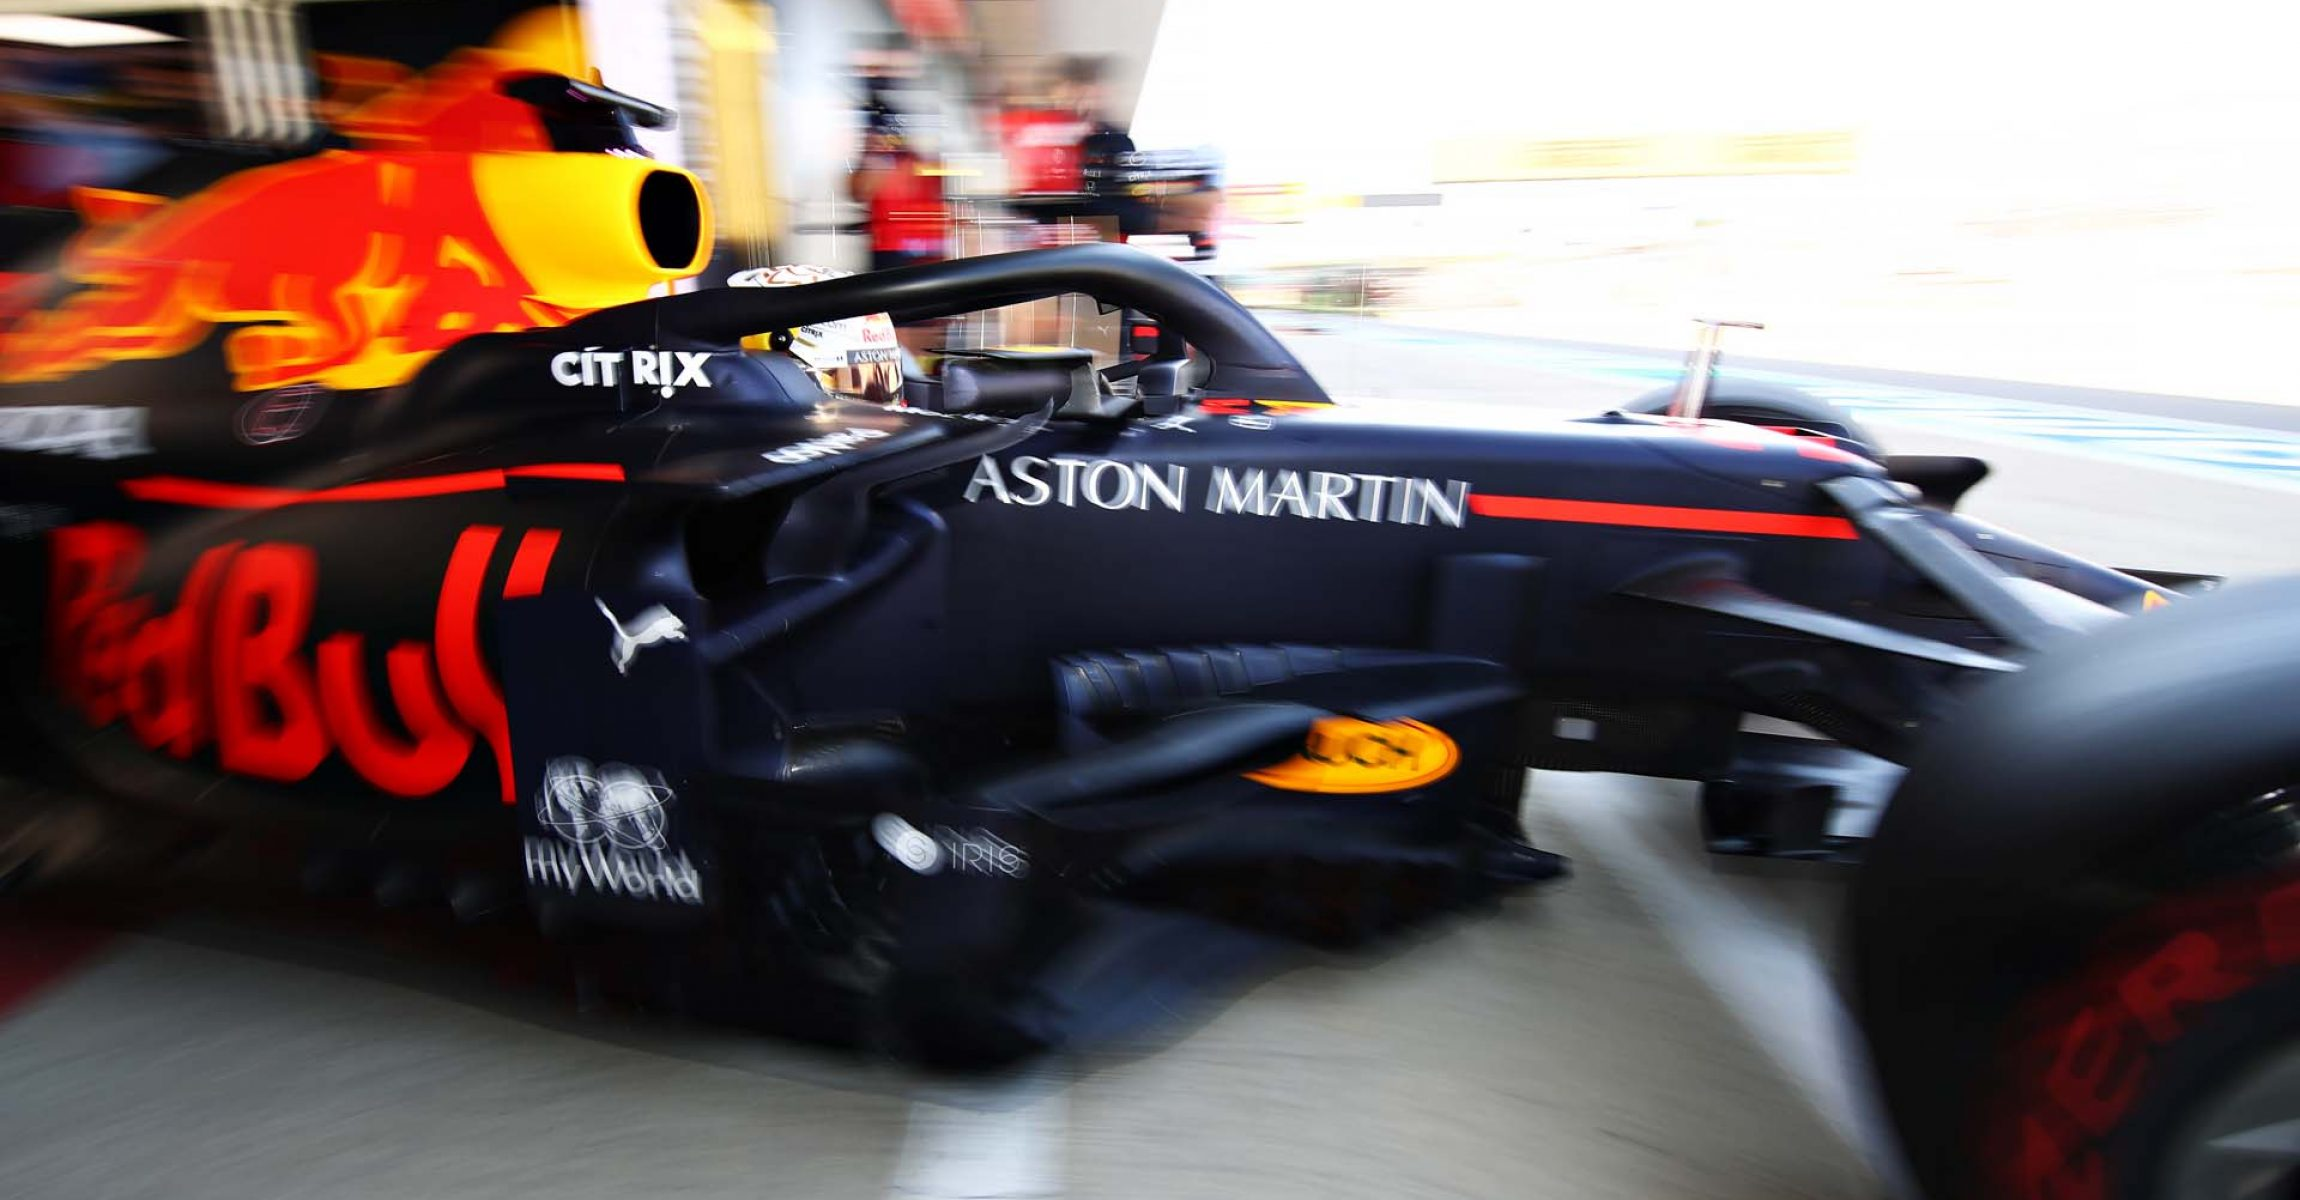 NORTHAMPTON, ENGLAND - JULY 31: Max Verstappen of the Netherlands driving the (33) Aston Martin Red Bull Racing RB16 leaves the garage during practice for the F1 Grand Prix of Great Britain at Silverstone on July 31, 2020 in Northampton, England. (Photo by Mark Thompson/Getty Images,)